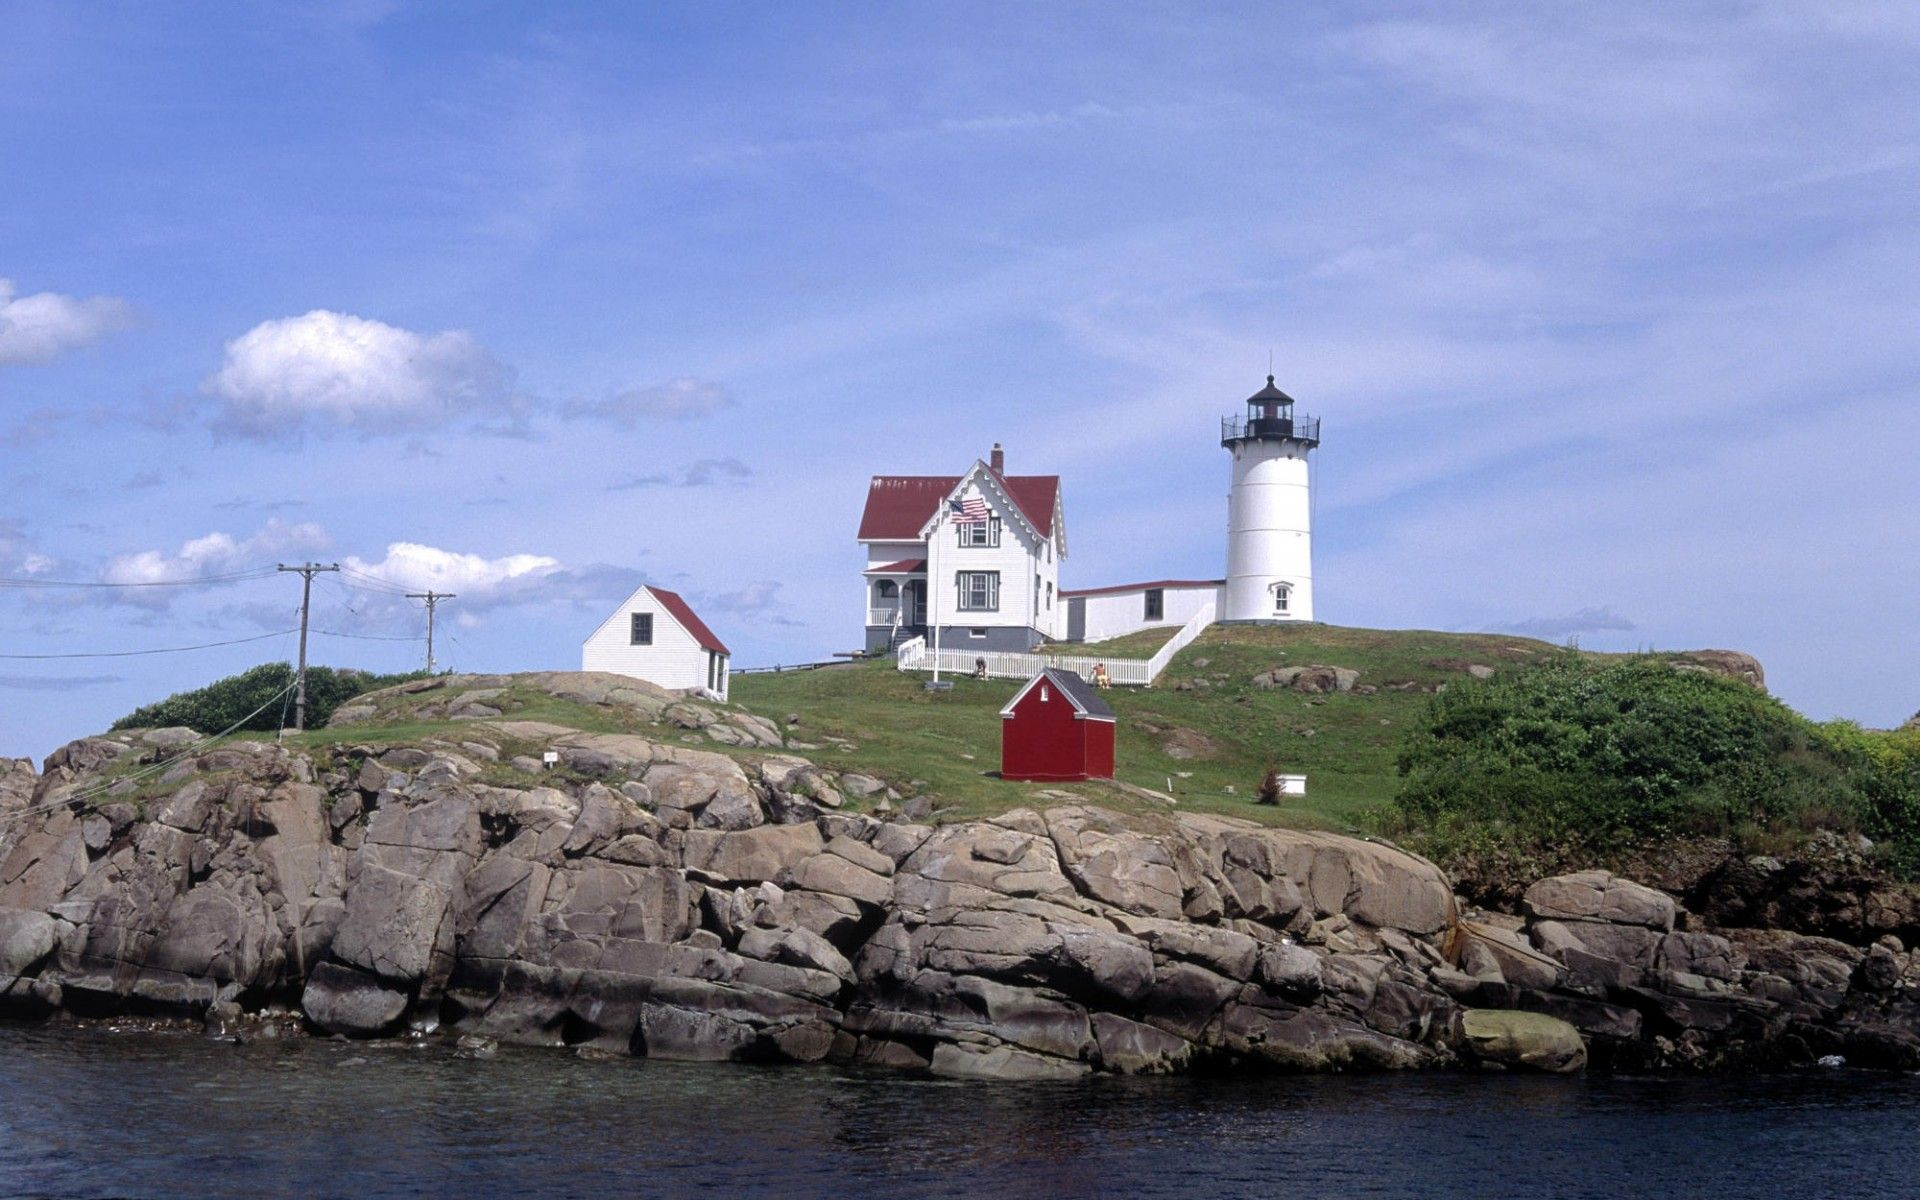 Pin by m a hook on the sea york beach york beach maine lighthouse - Lighthouse live wallpaper ...